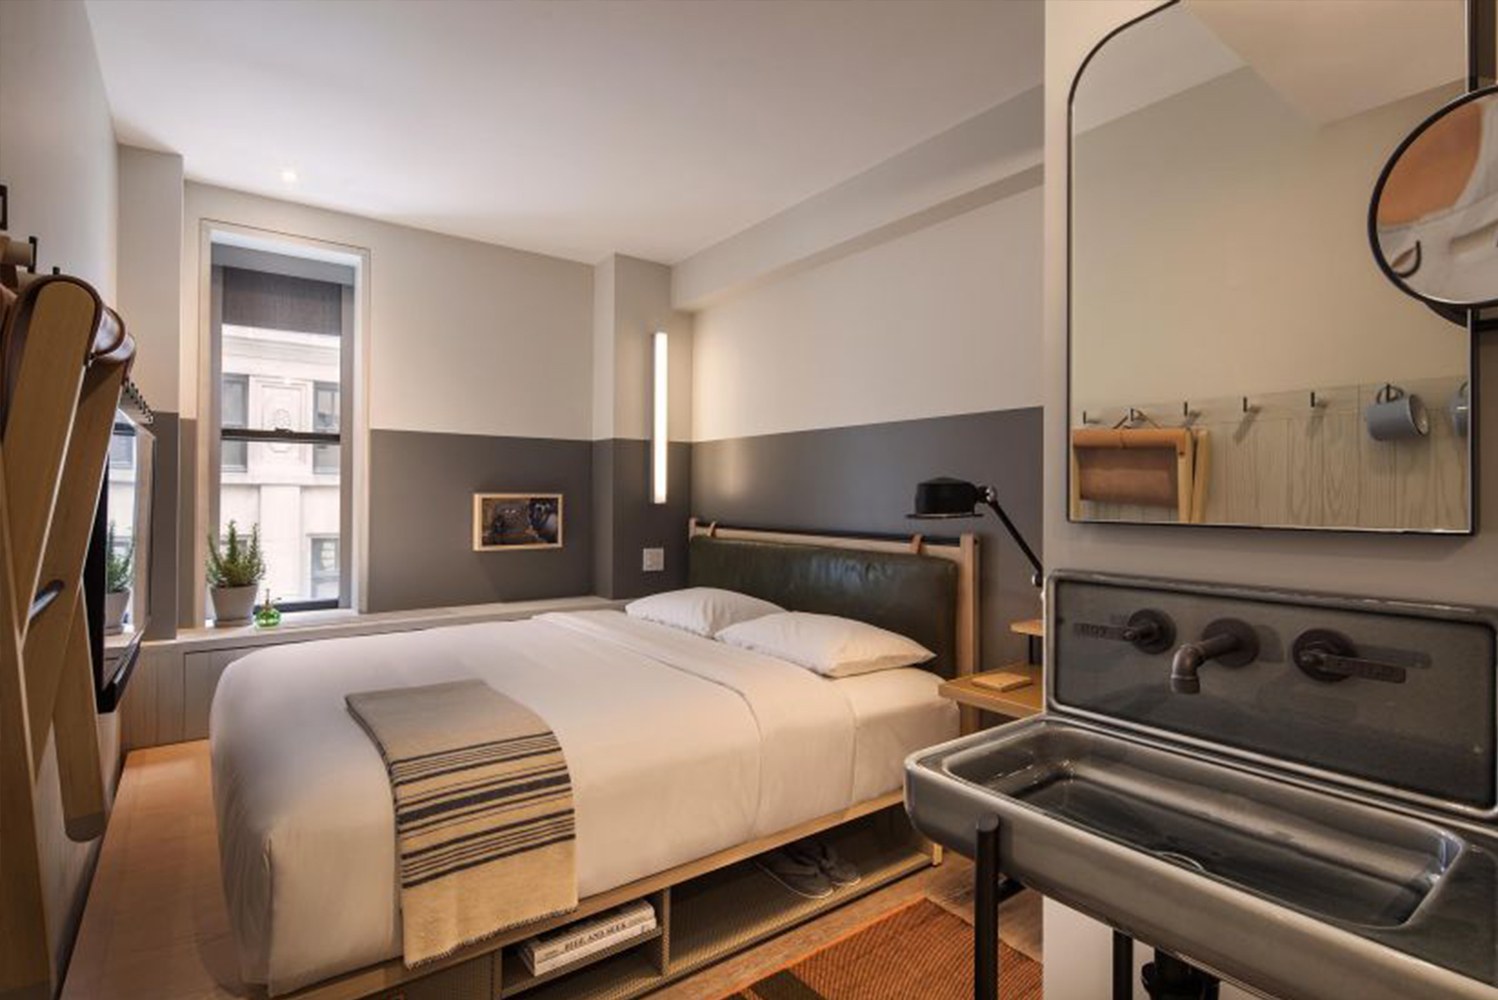 From king suites to quad rooms with twin bunks, all rooms include Yabu Pushelberg-designed foldaway furniture, walk-in rain showers, wood-frame beds with storage, and open pegboard closets.